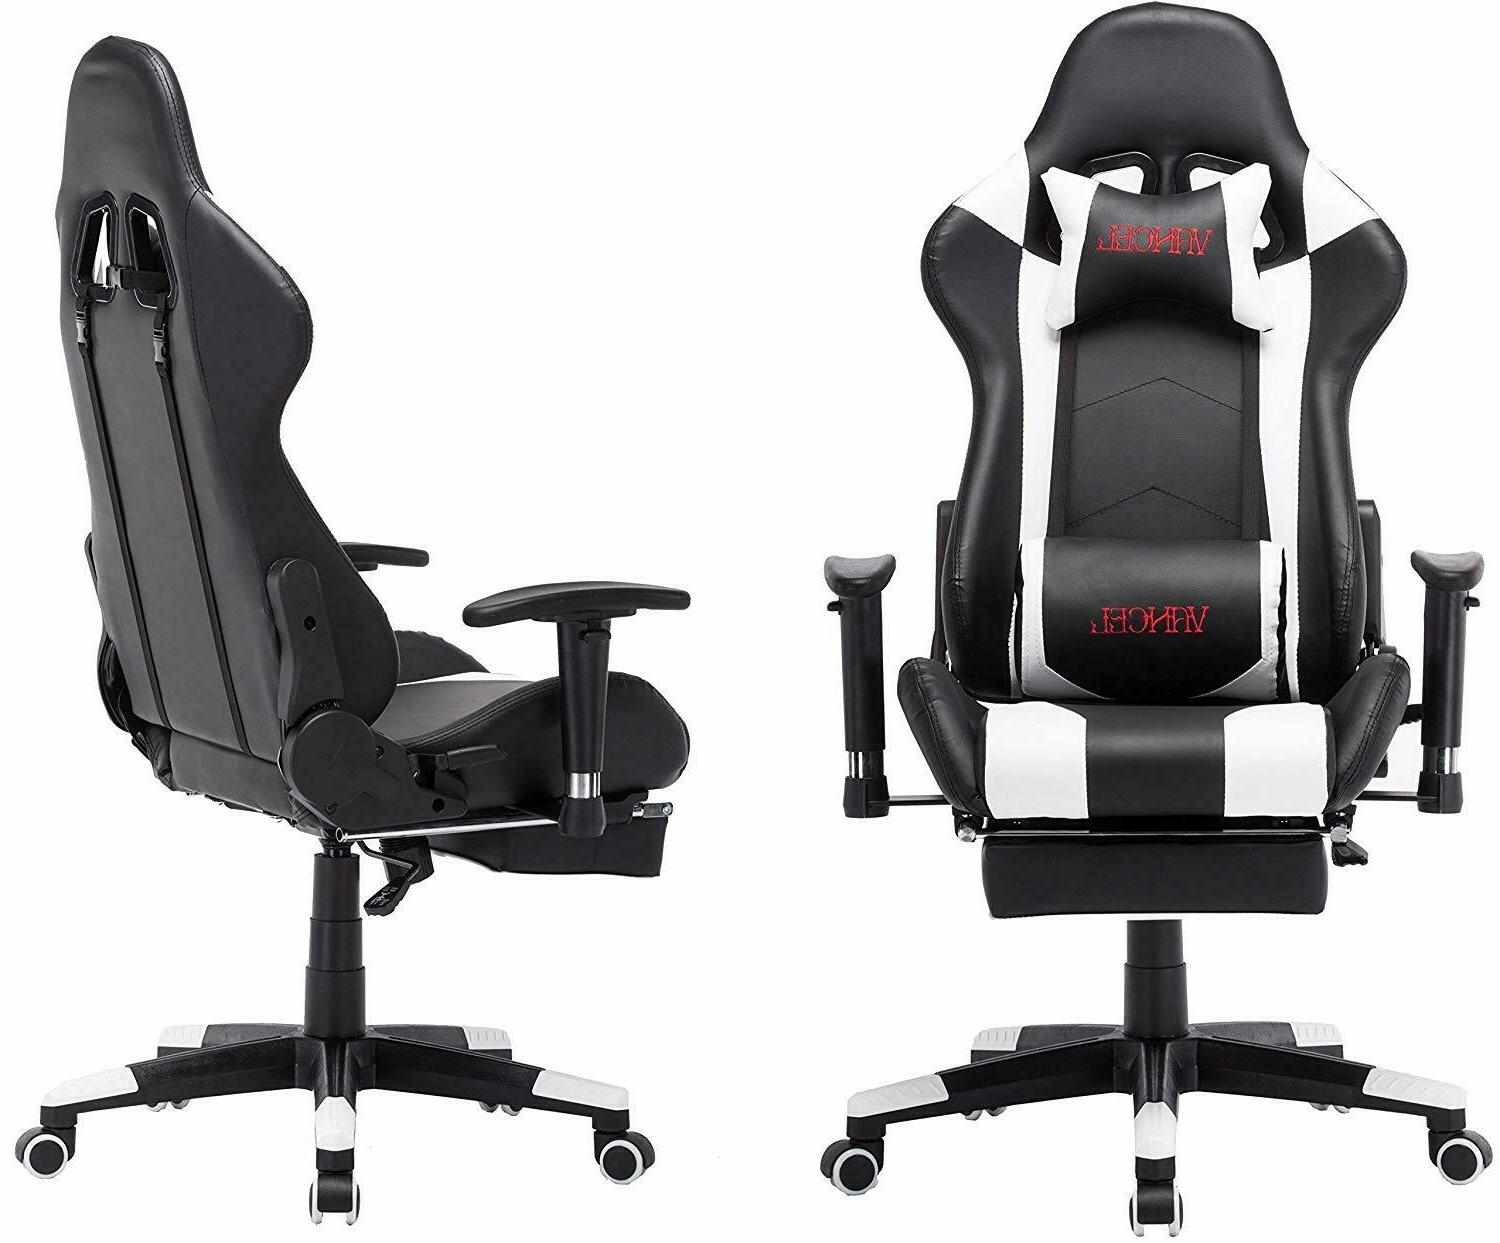 Ergonomic Computer Gaming Chair with Support